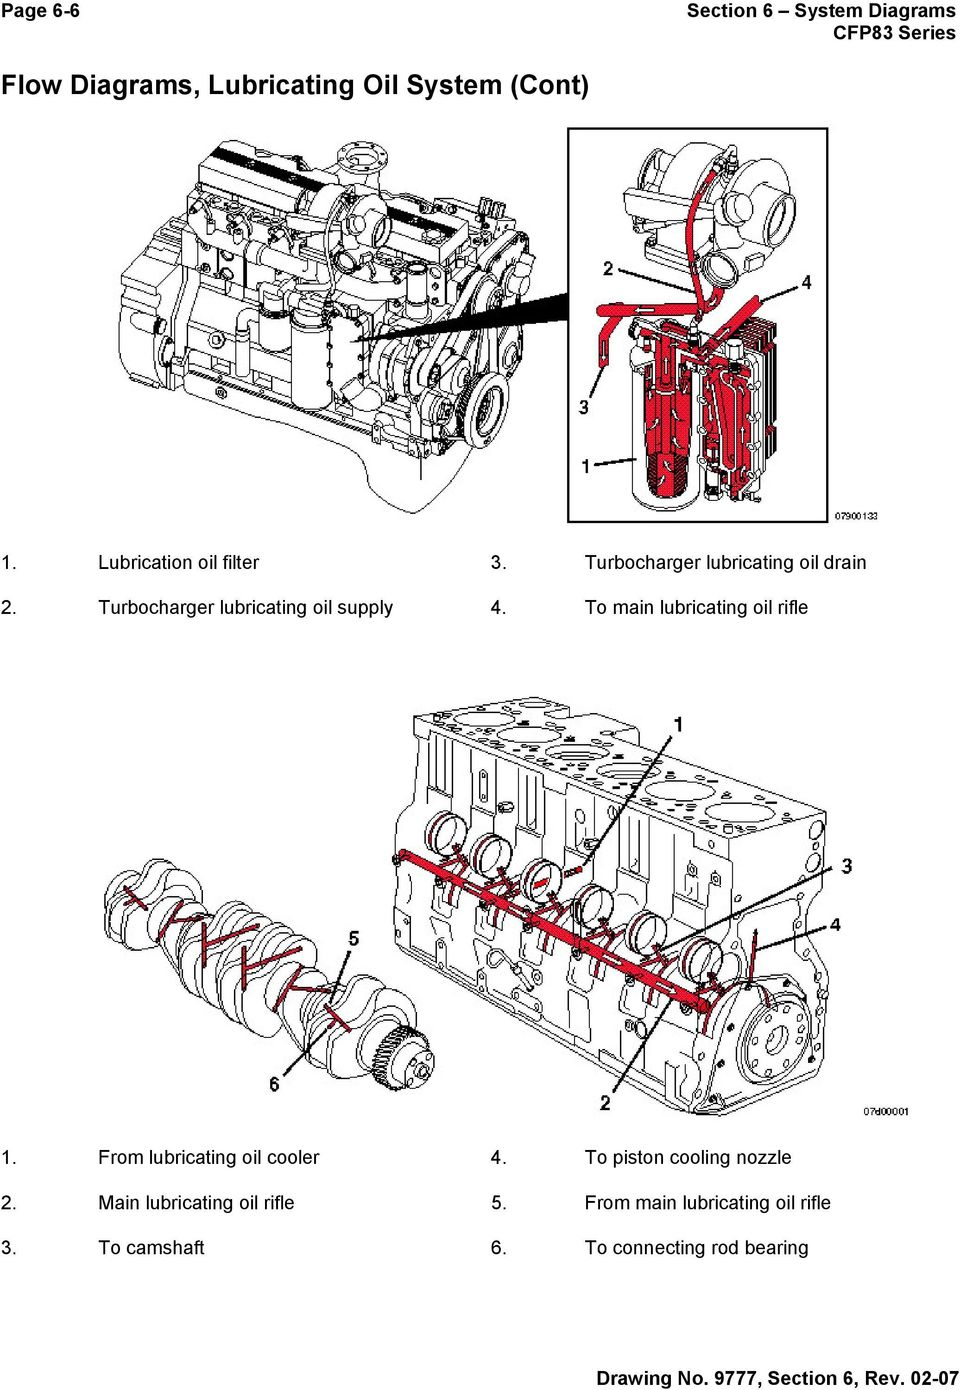 hight resolution of turbocharger lubricating oil supply 4 to main lubricating oil rifle 1 7 section 6 system diagrams